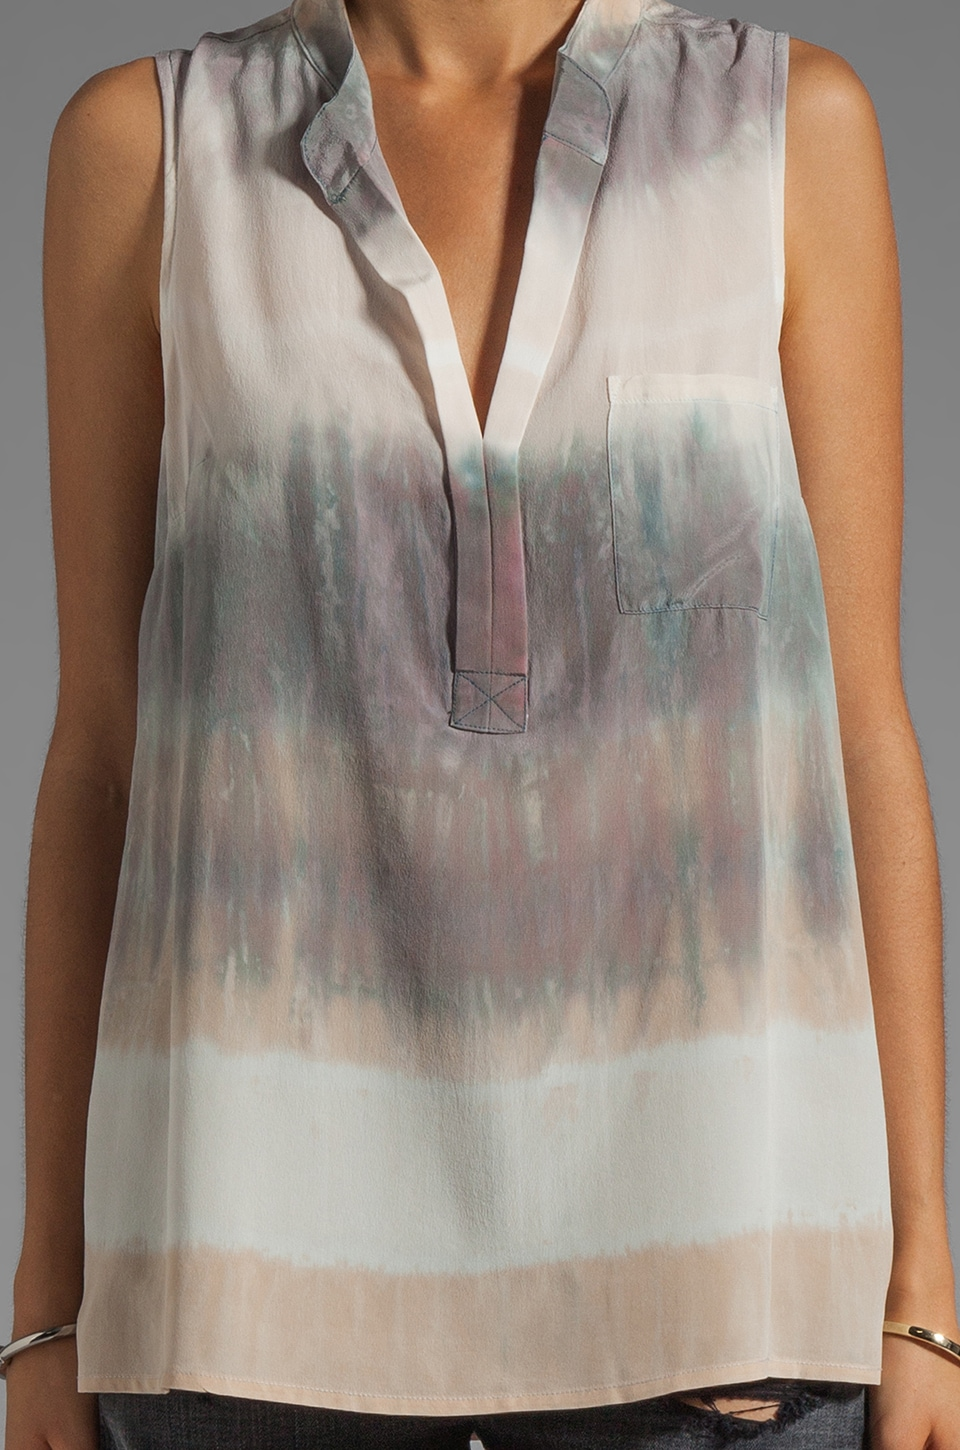 Gypsy 05 Hampton Silk S/L Placket Top in Oyster